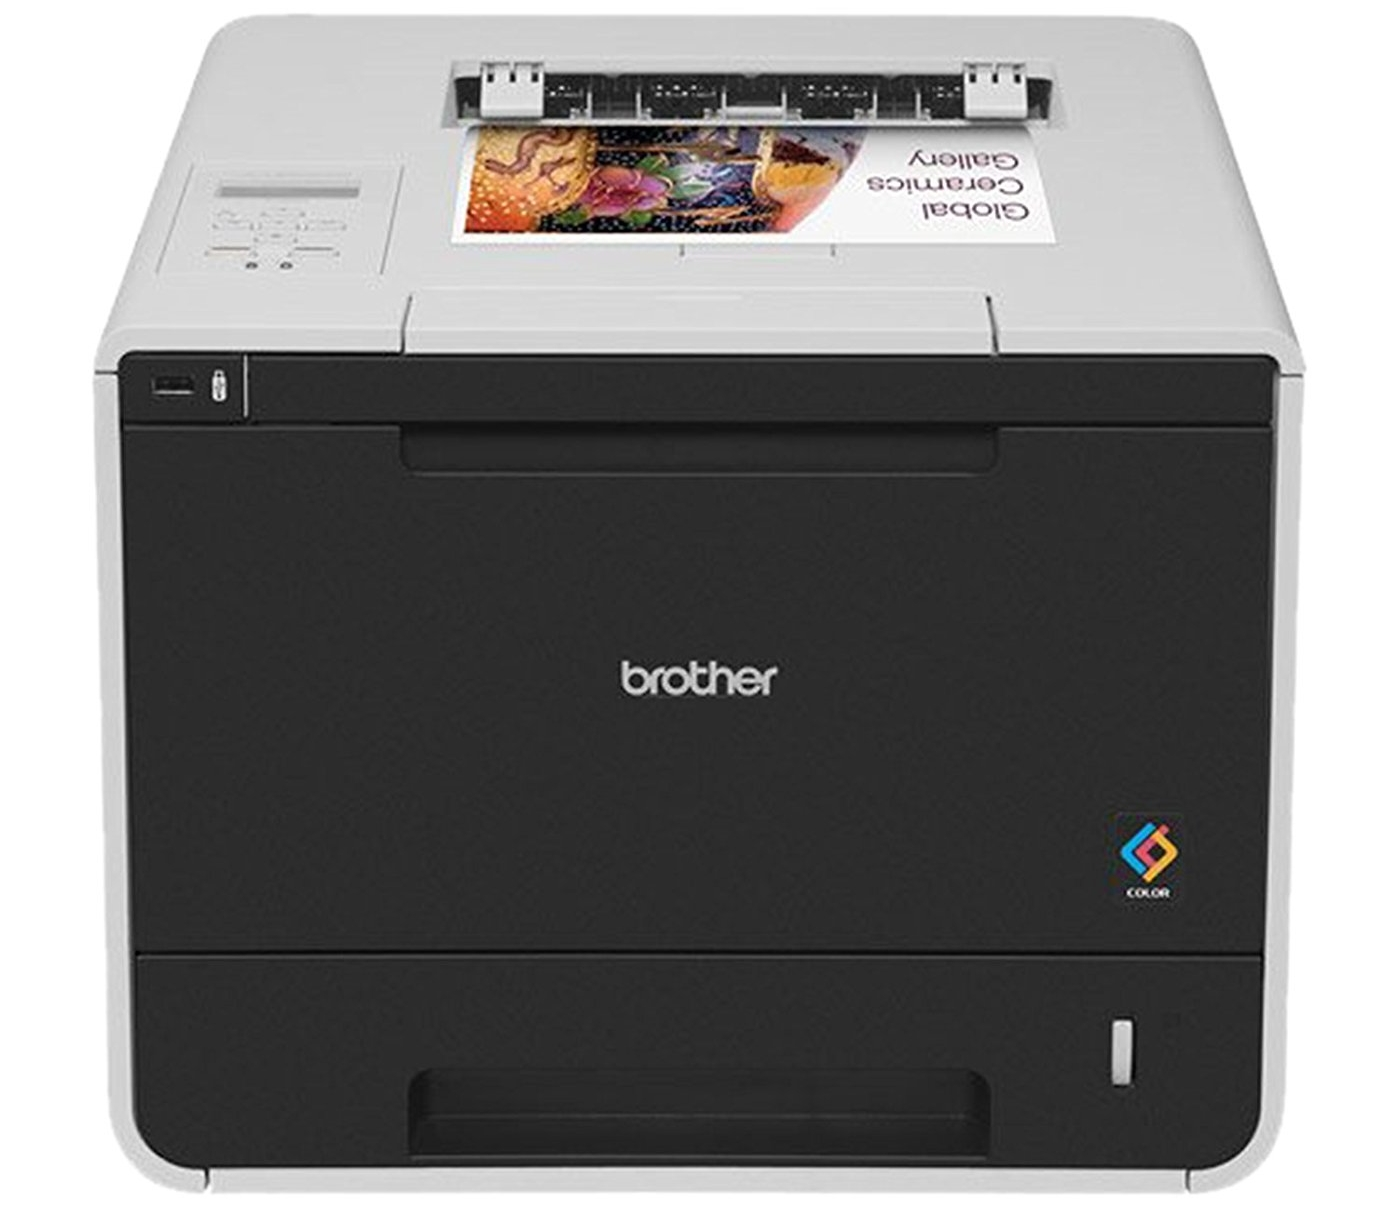 Brother HLL8350CDW Wireless Color Laser PrinterThis printer is an absolute work horse. We do tons of printing each month for the various businesses we own and this printer has served us extremely well. This or any other of the higher level Brother printers would be a good choice. Brother also has incredible customer service and phone support. We own multiple of this machine. -